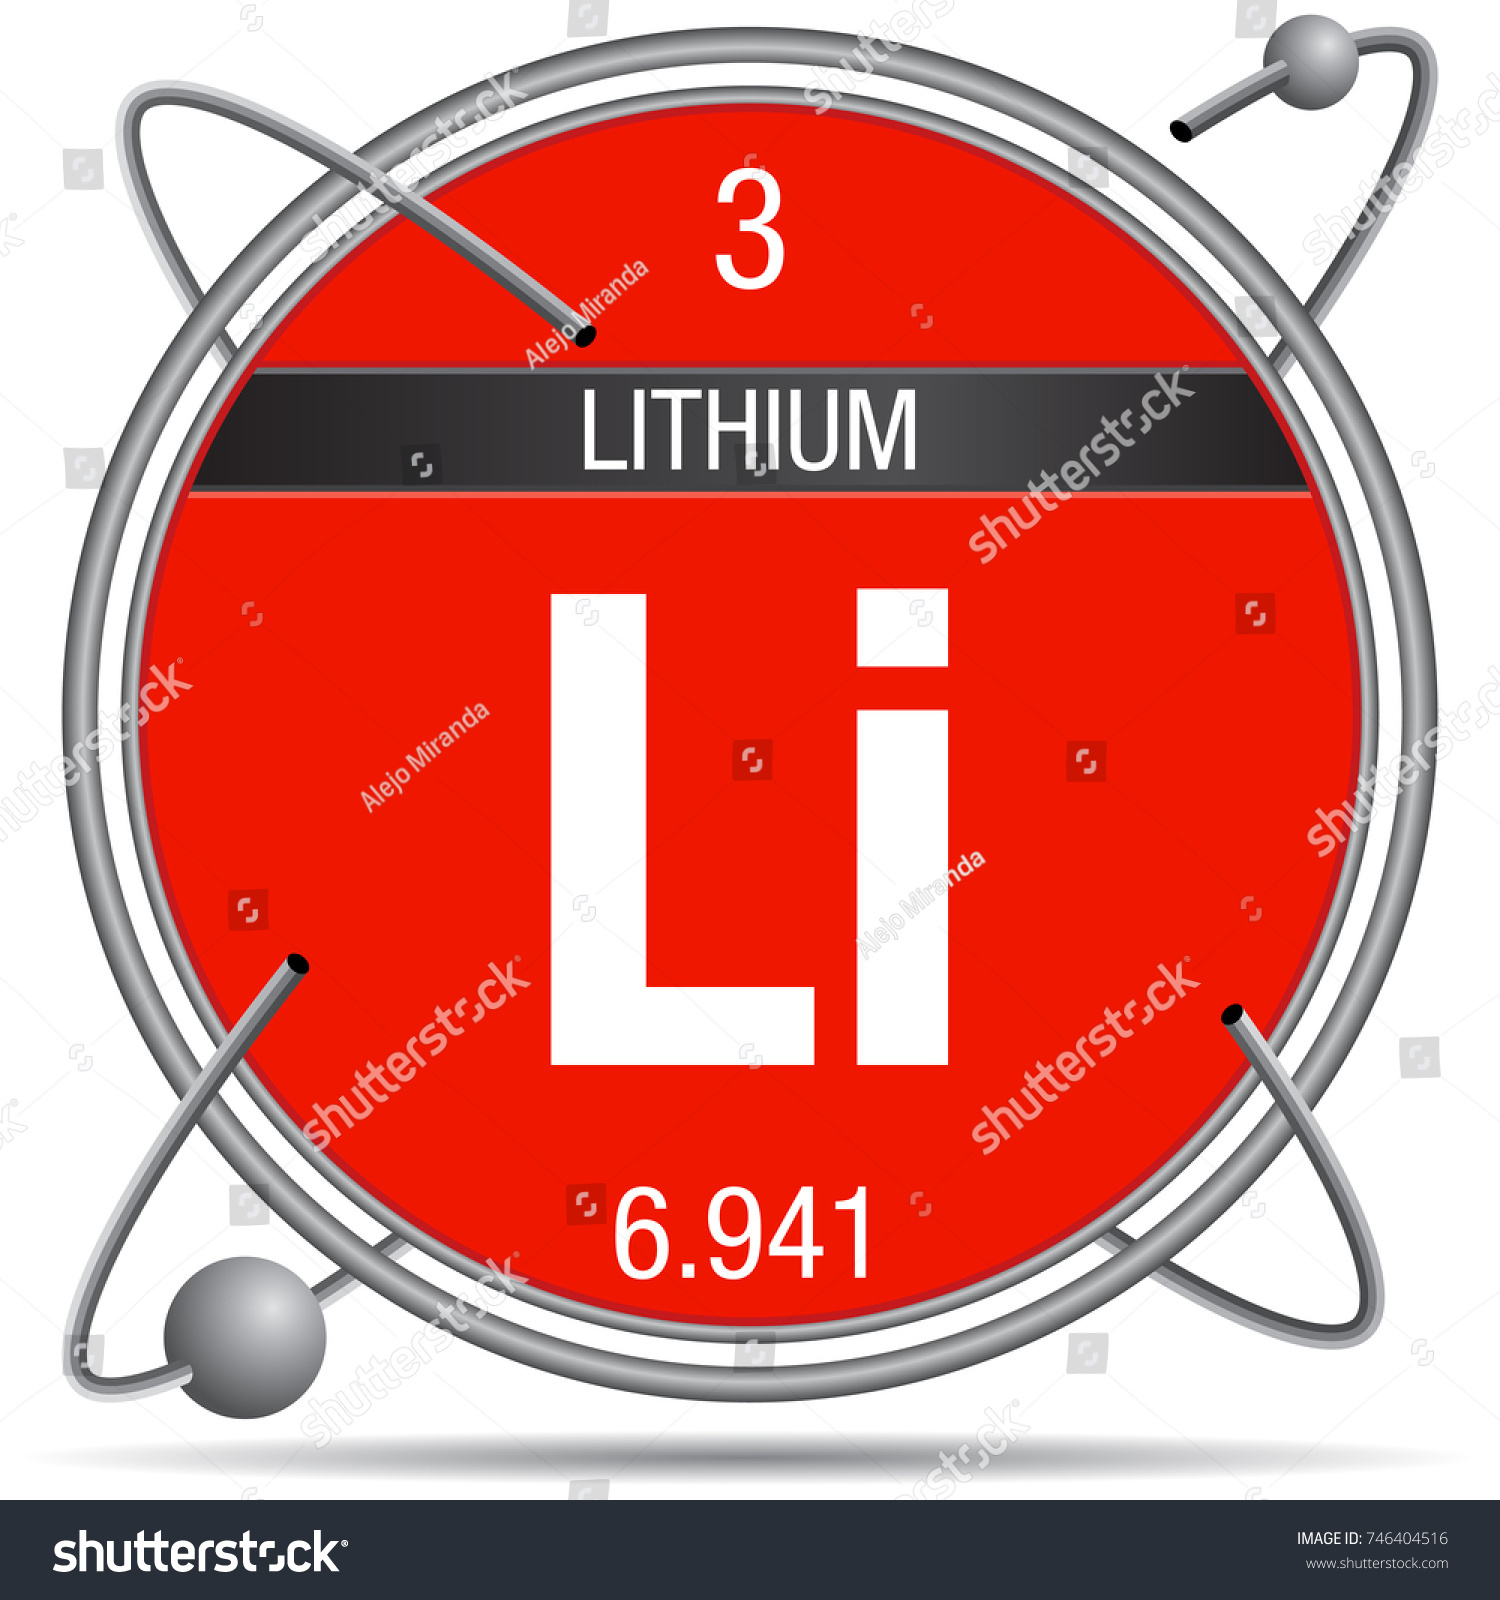 Lithium symbol inside metal ring colored stock vector 746404516 lithium symbol inside a metal ring with colored background and spheres orbiting around element number buycottarizona